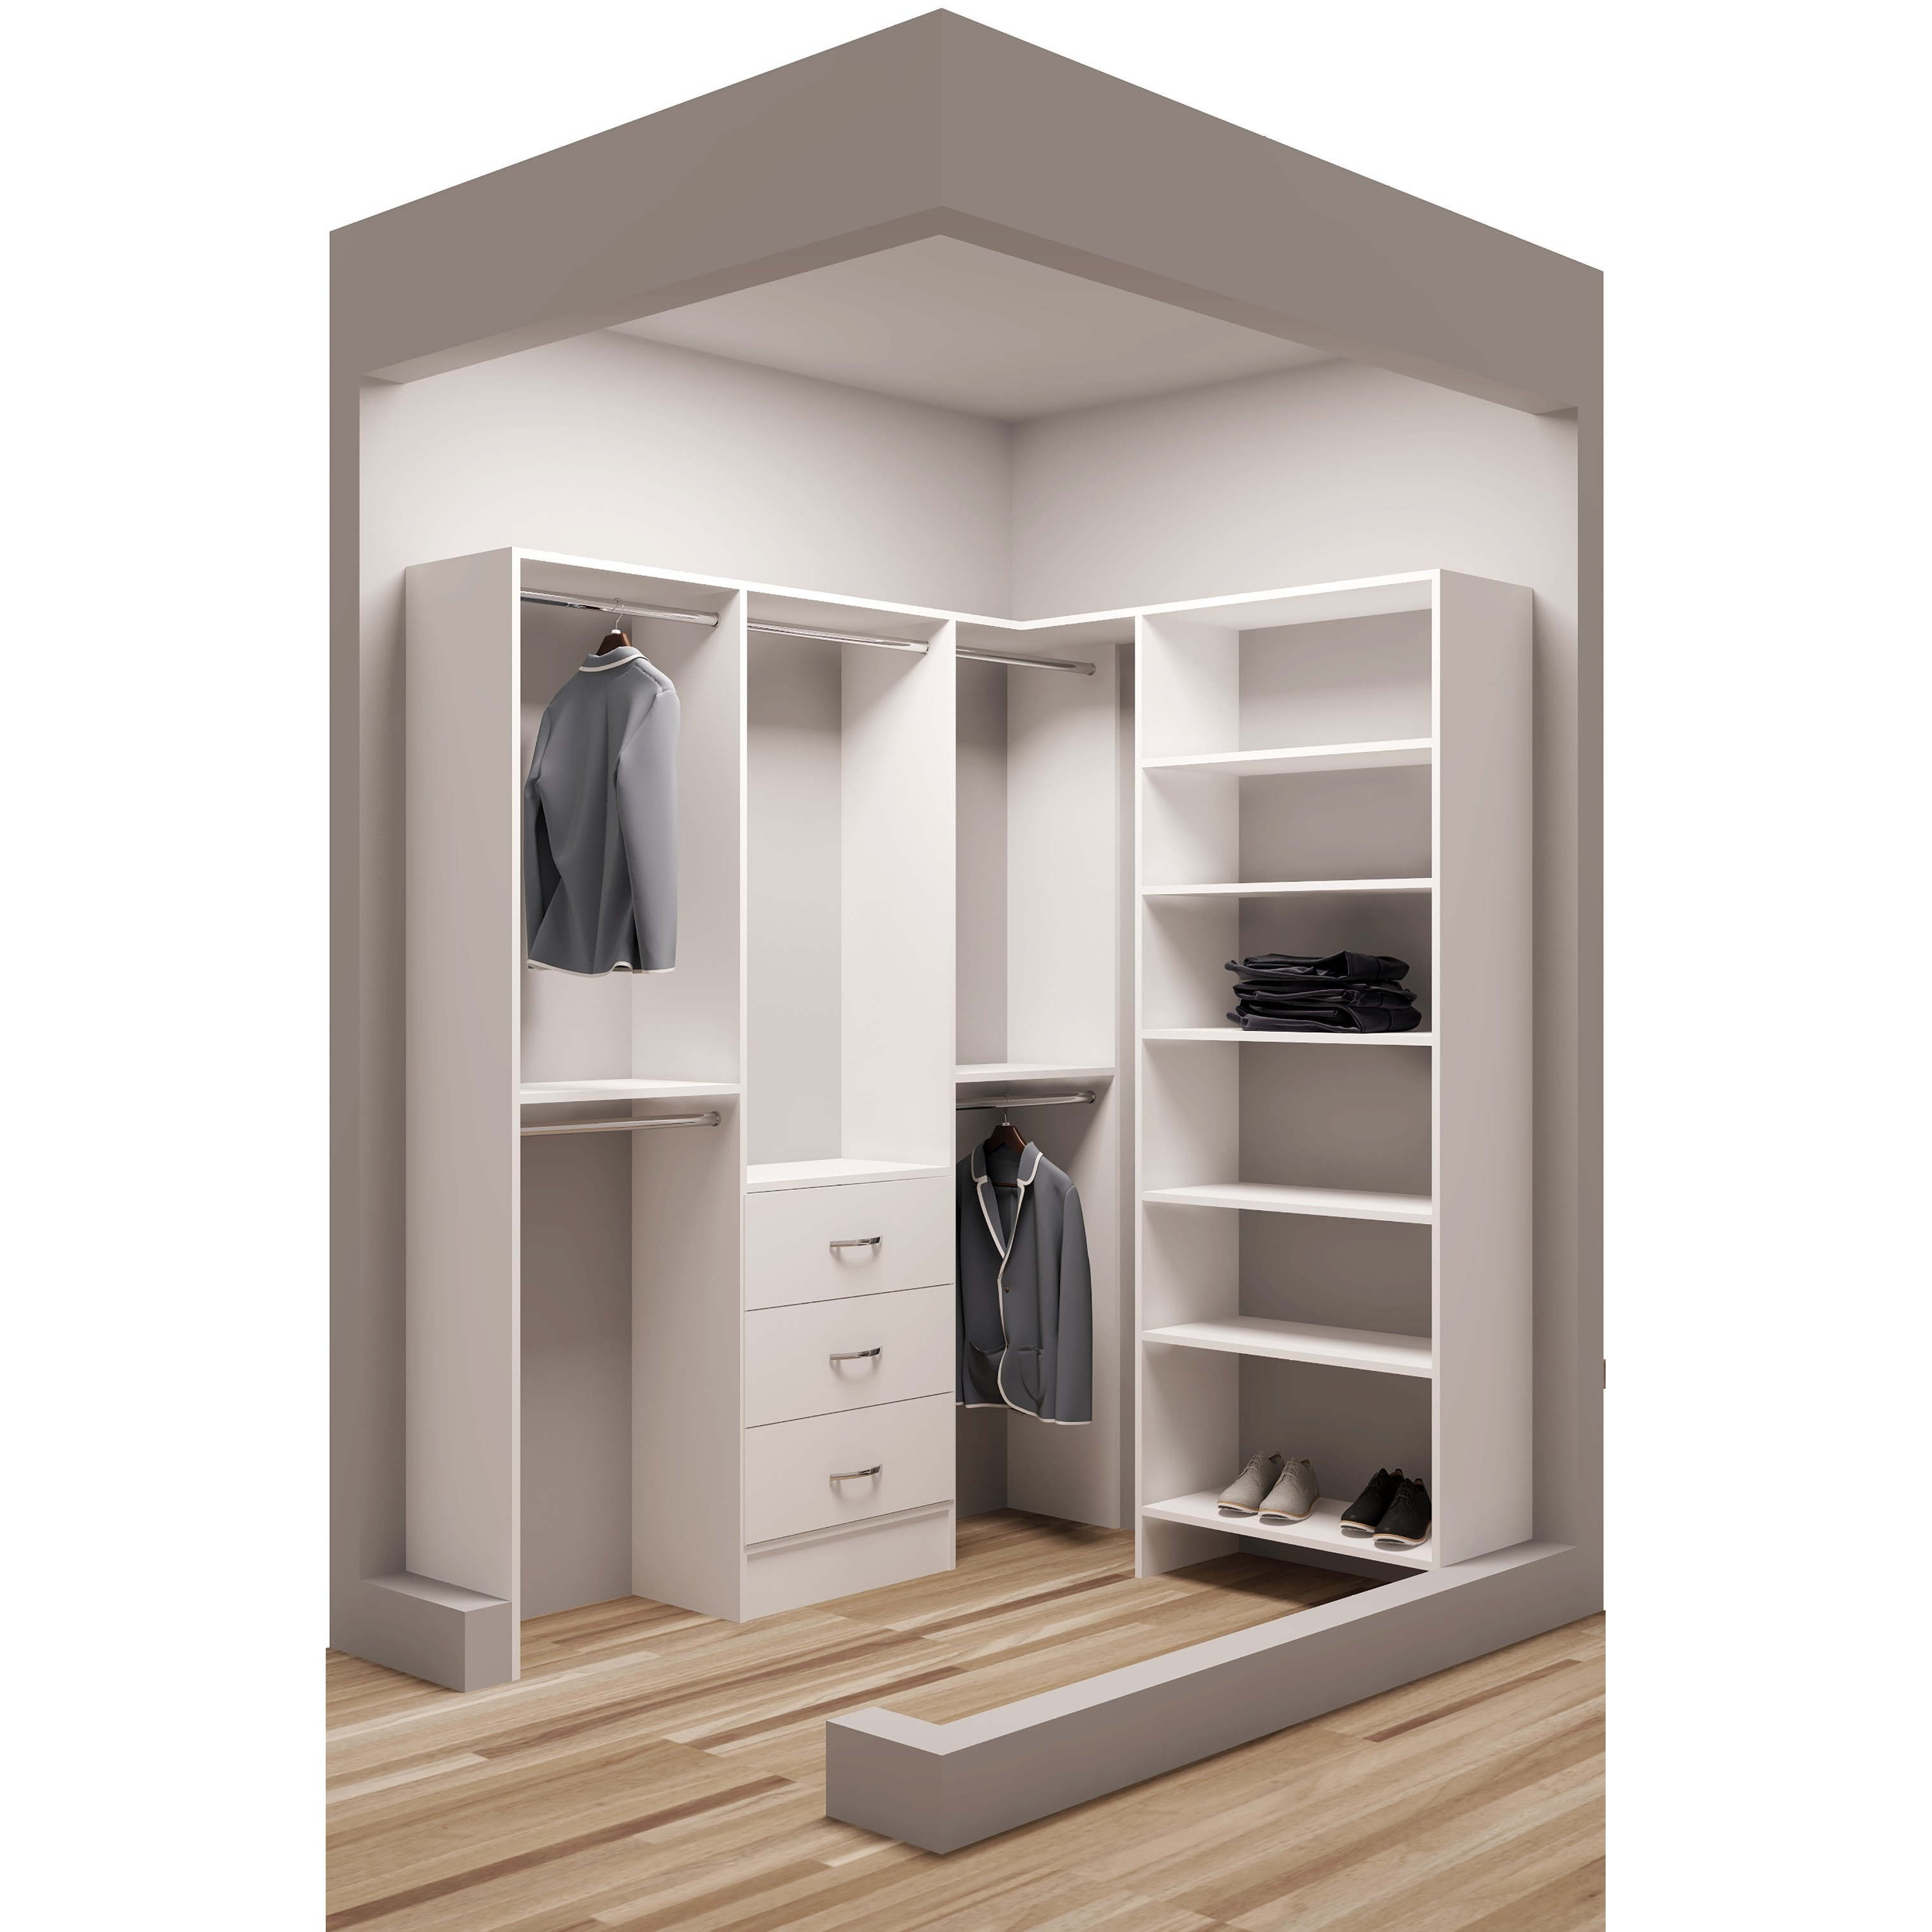 Tidysquares White Wood 75 X 65 5 Walk In Closet System